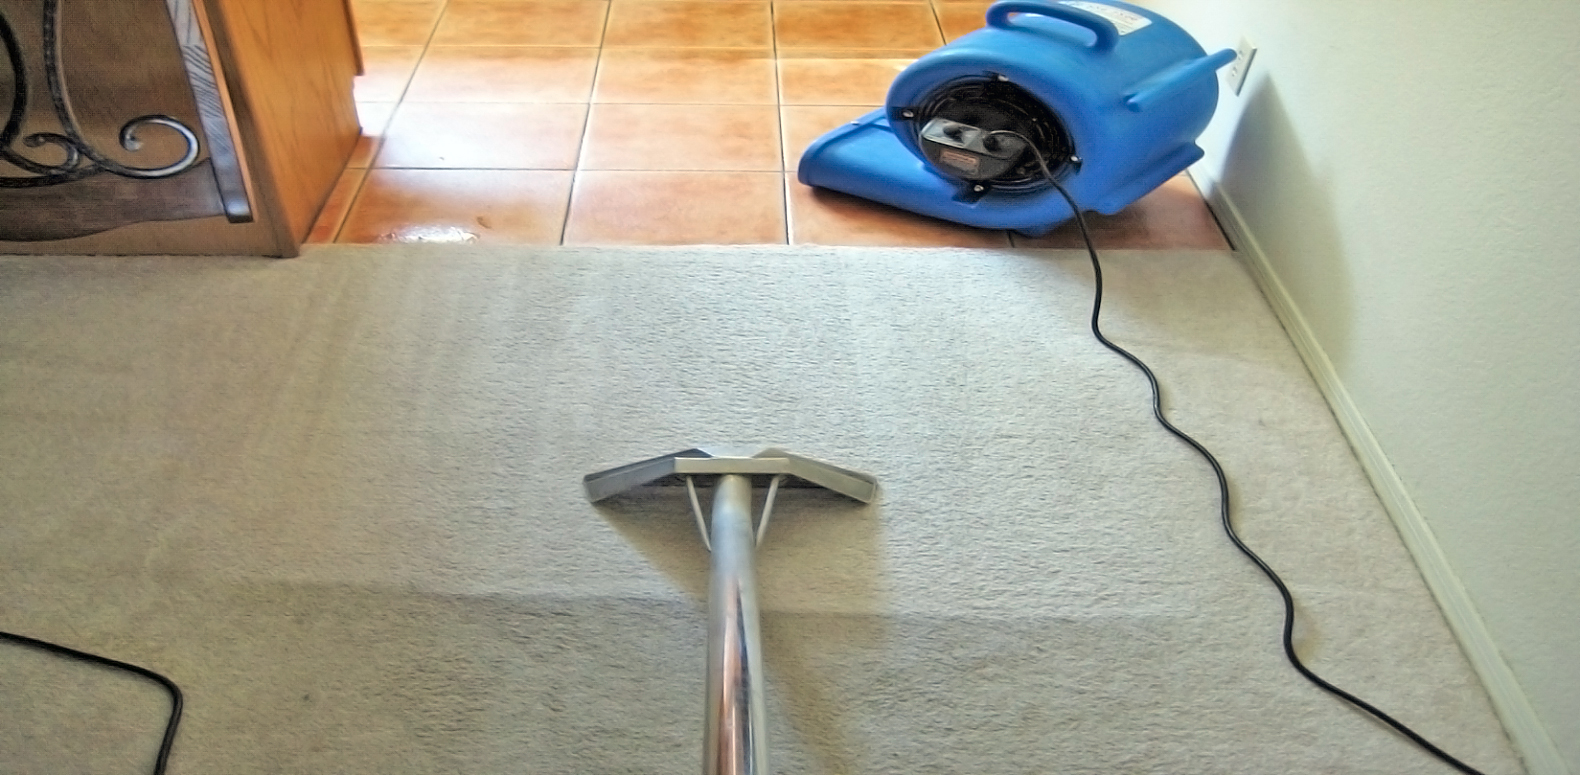 Carpet Cleaning Ashcroft